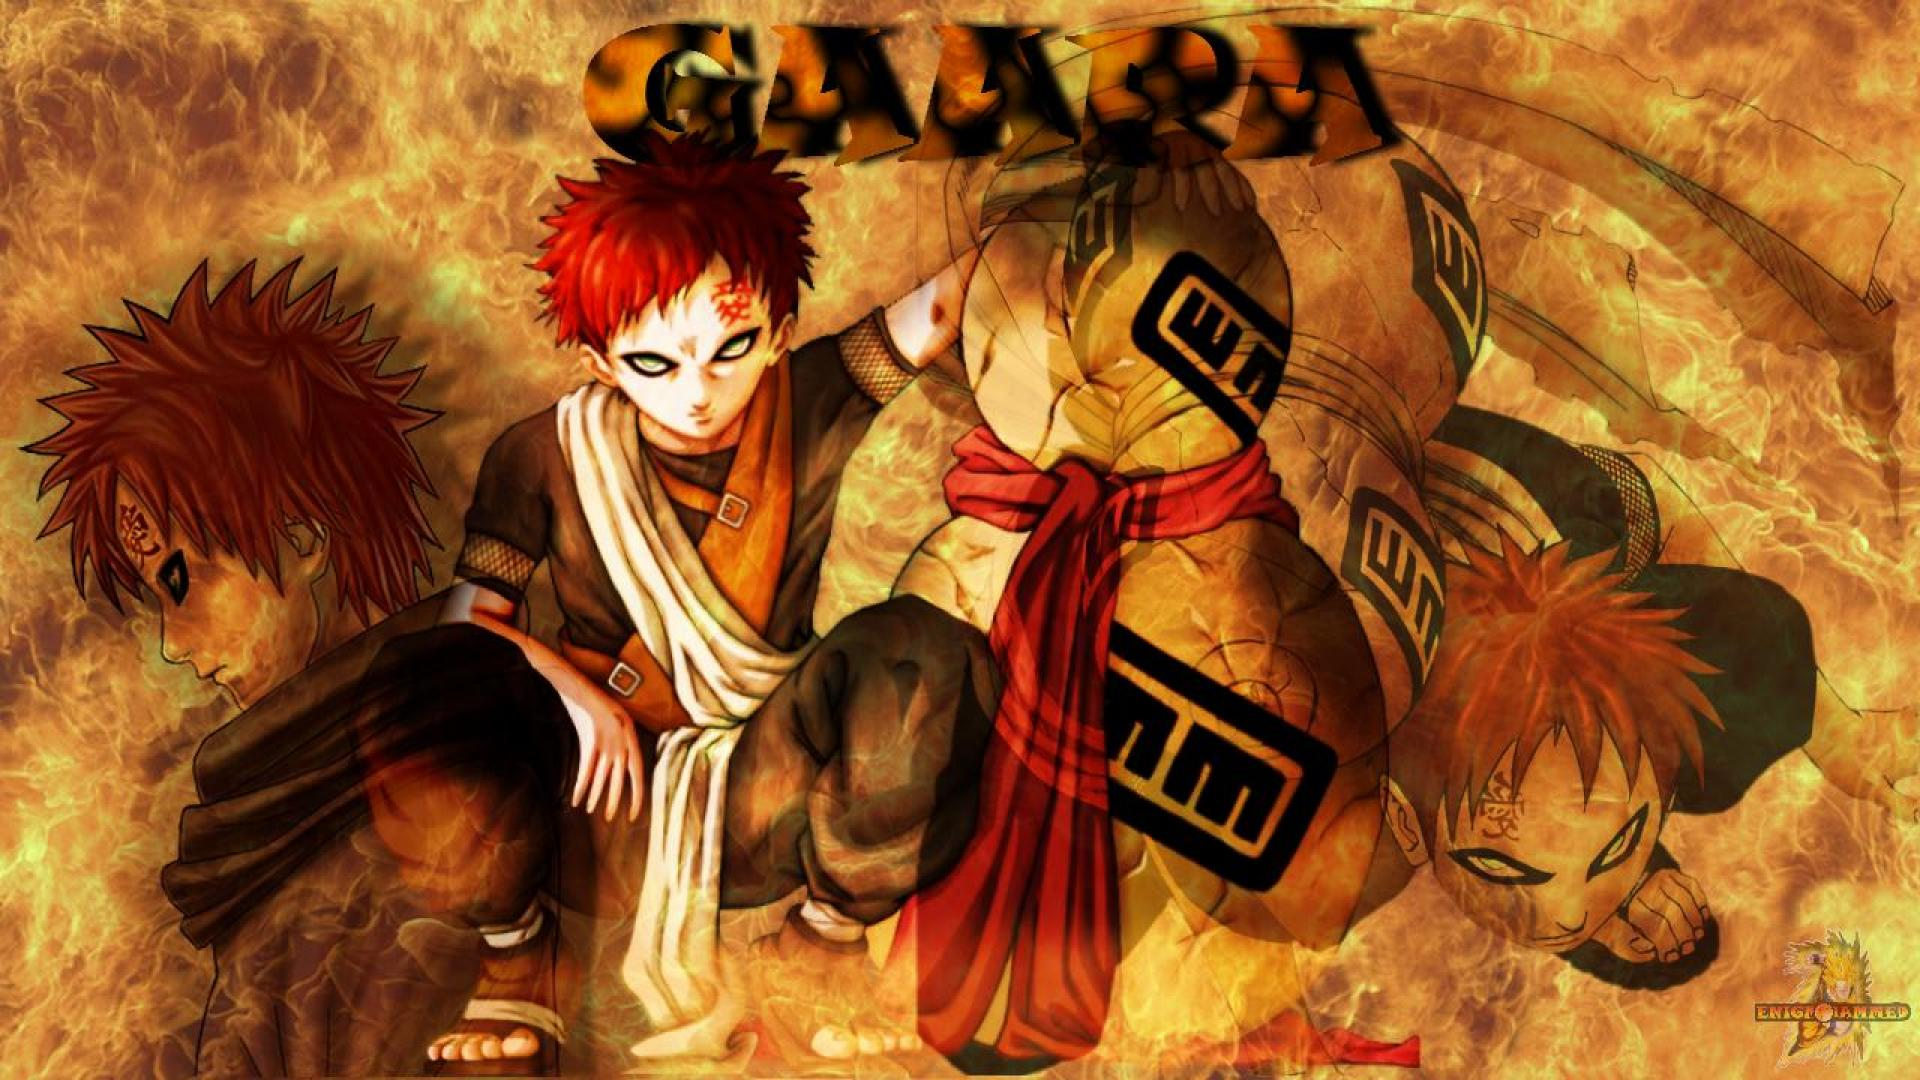 GAARA WALLPAPER   17123   HD Wallpapers   [wallpapersinhqpw] 1920x1080